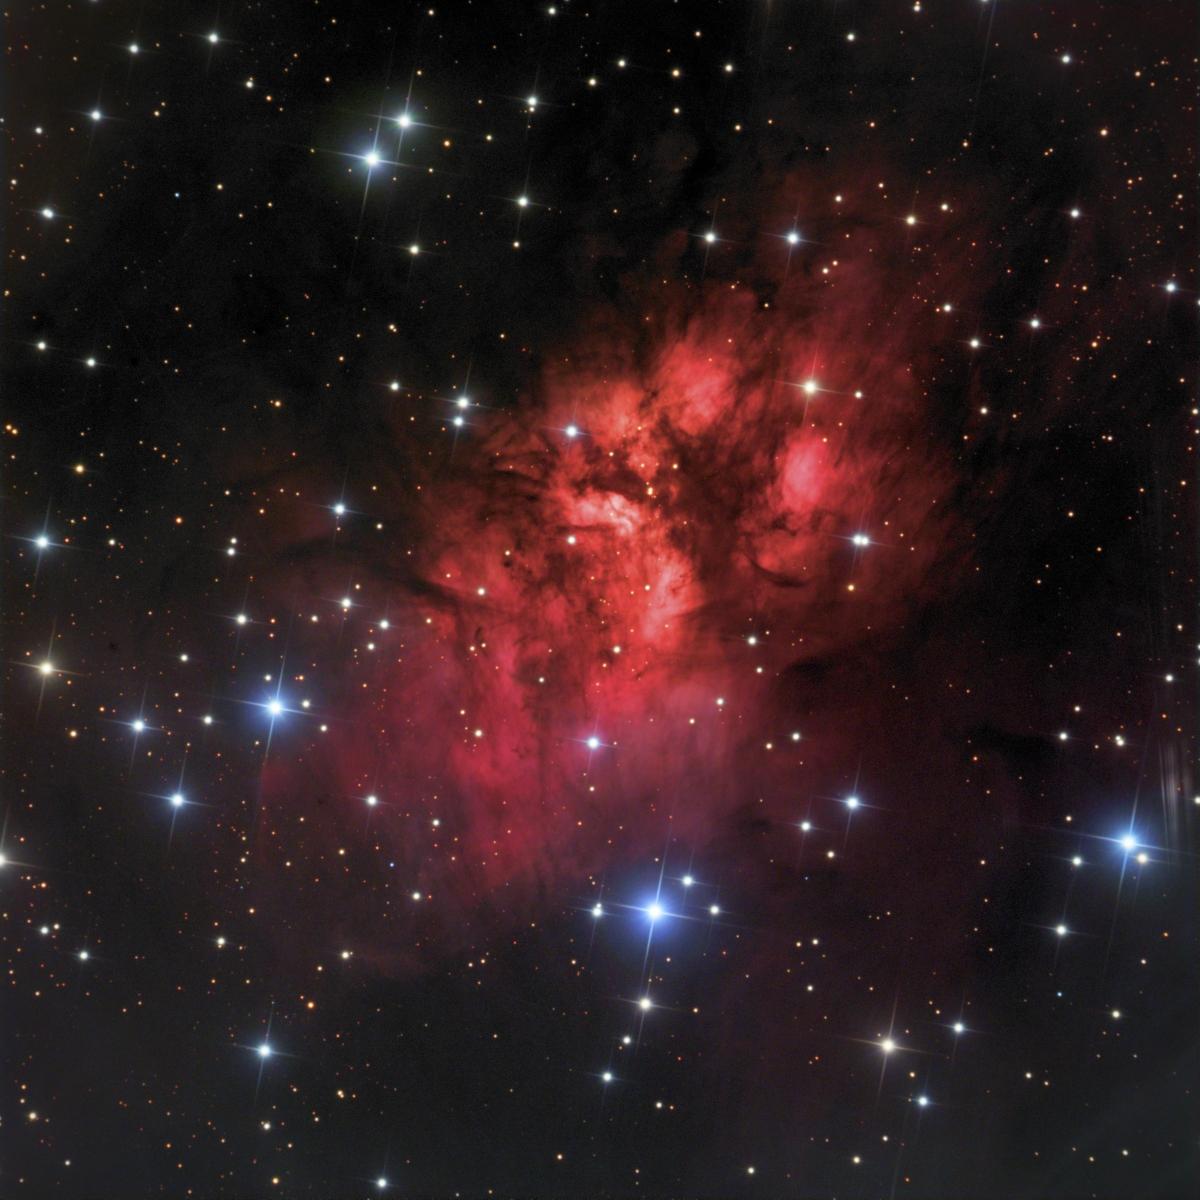 Gum 20 Emission Nebula in Vela_2017-04-29_SSRO